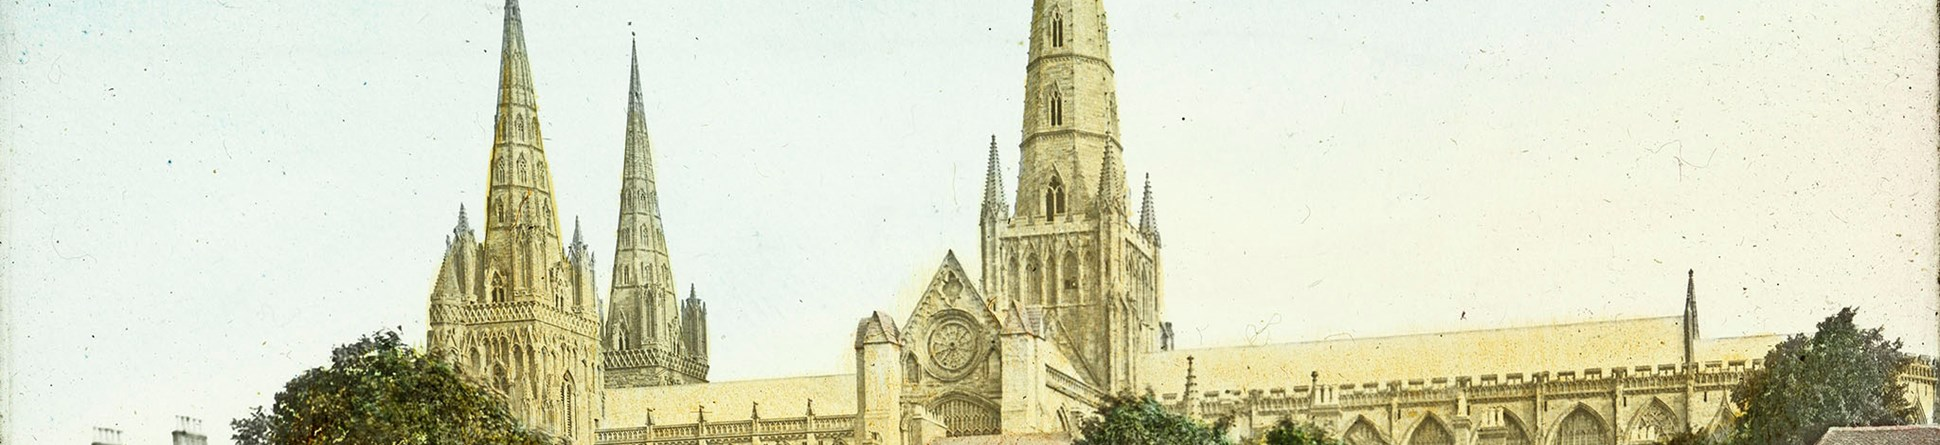 Arcive coloured photo of a Cathedral with a spire behind trees.